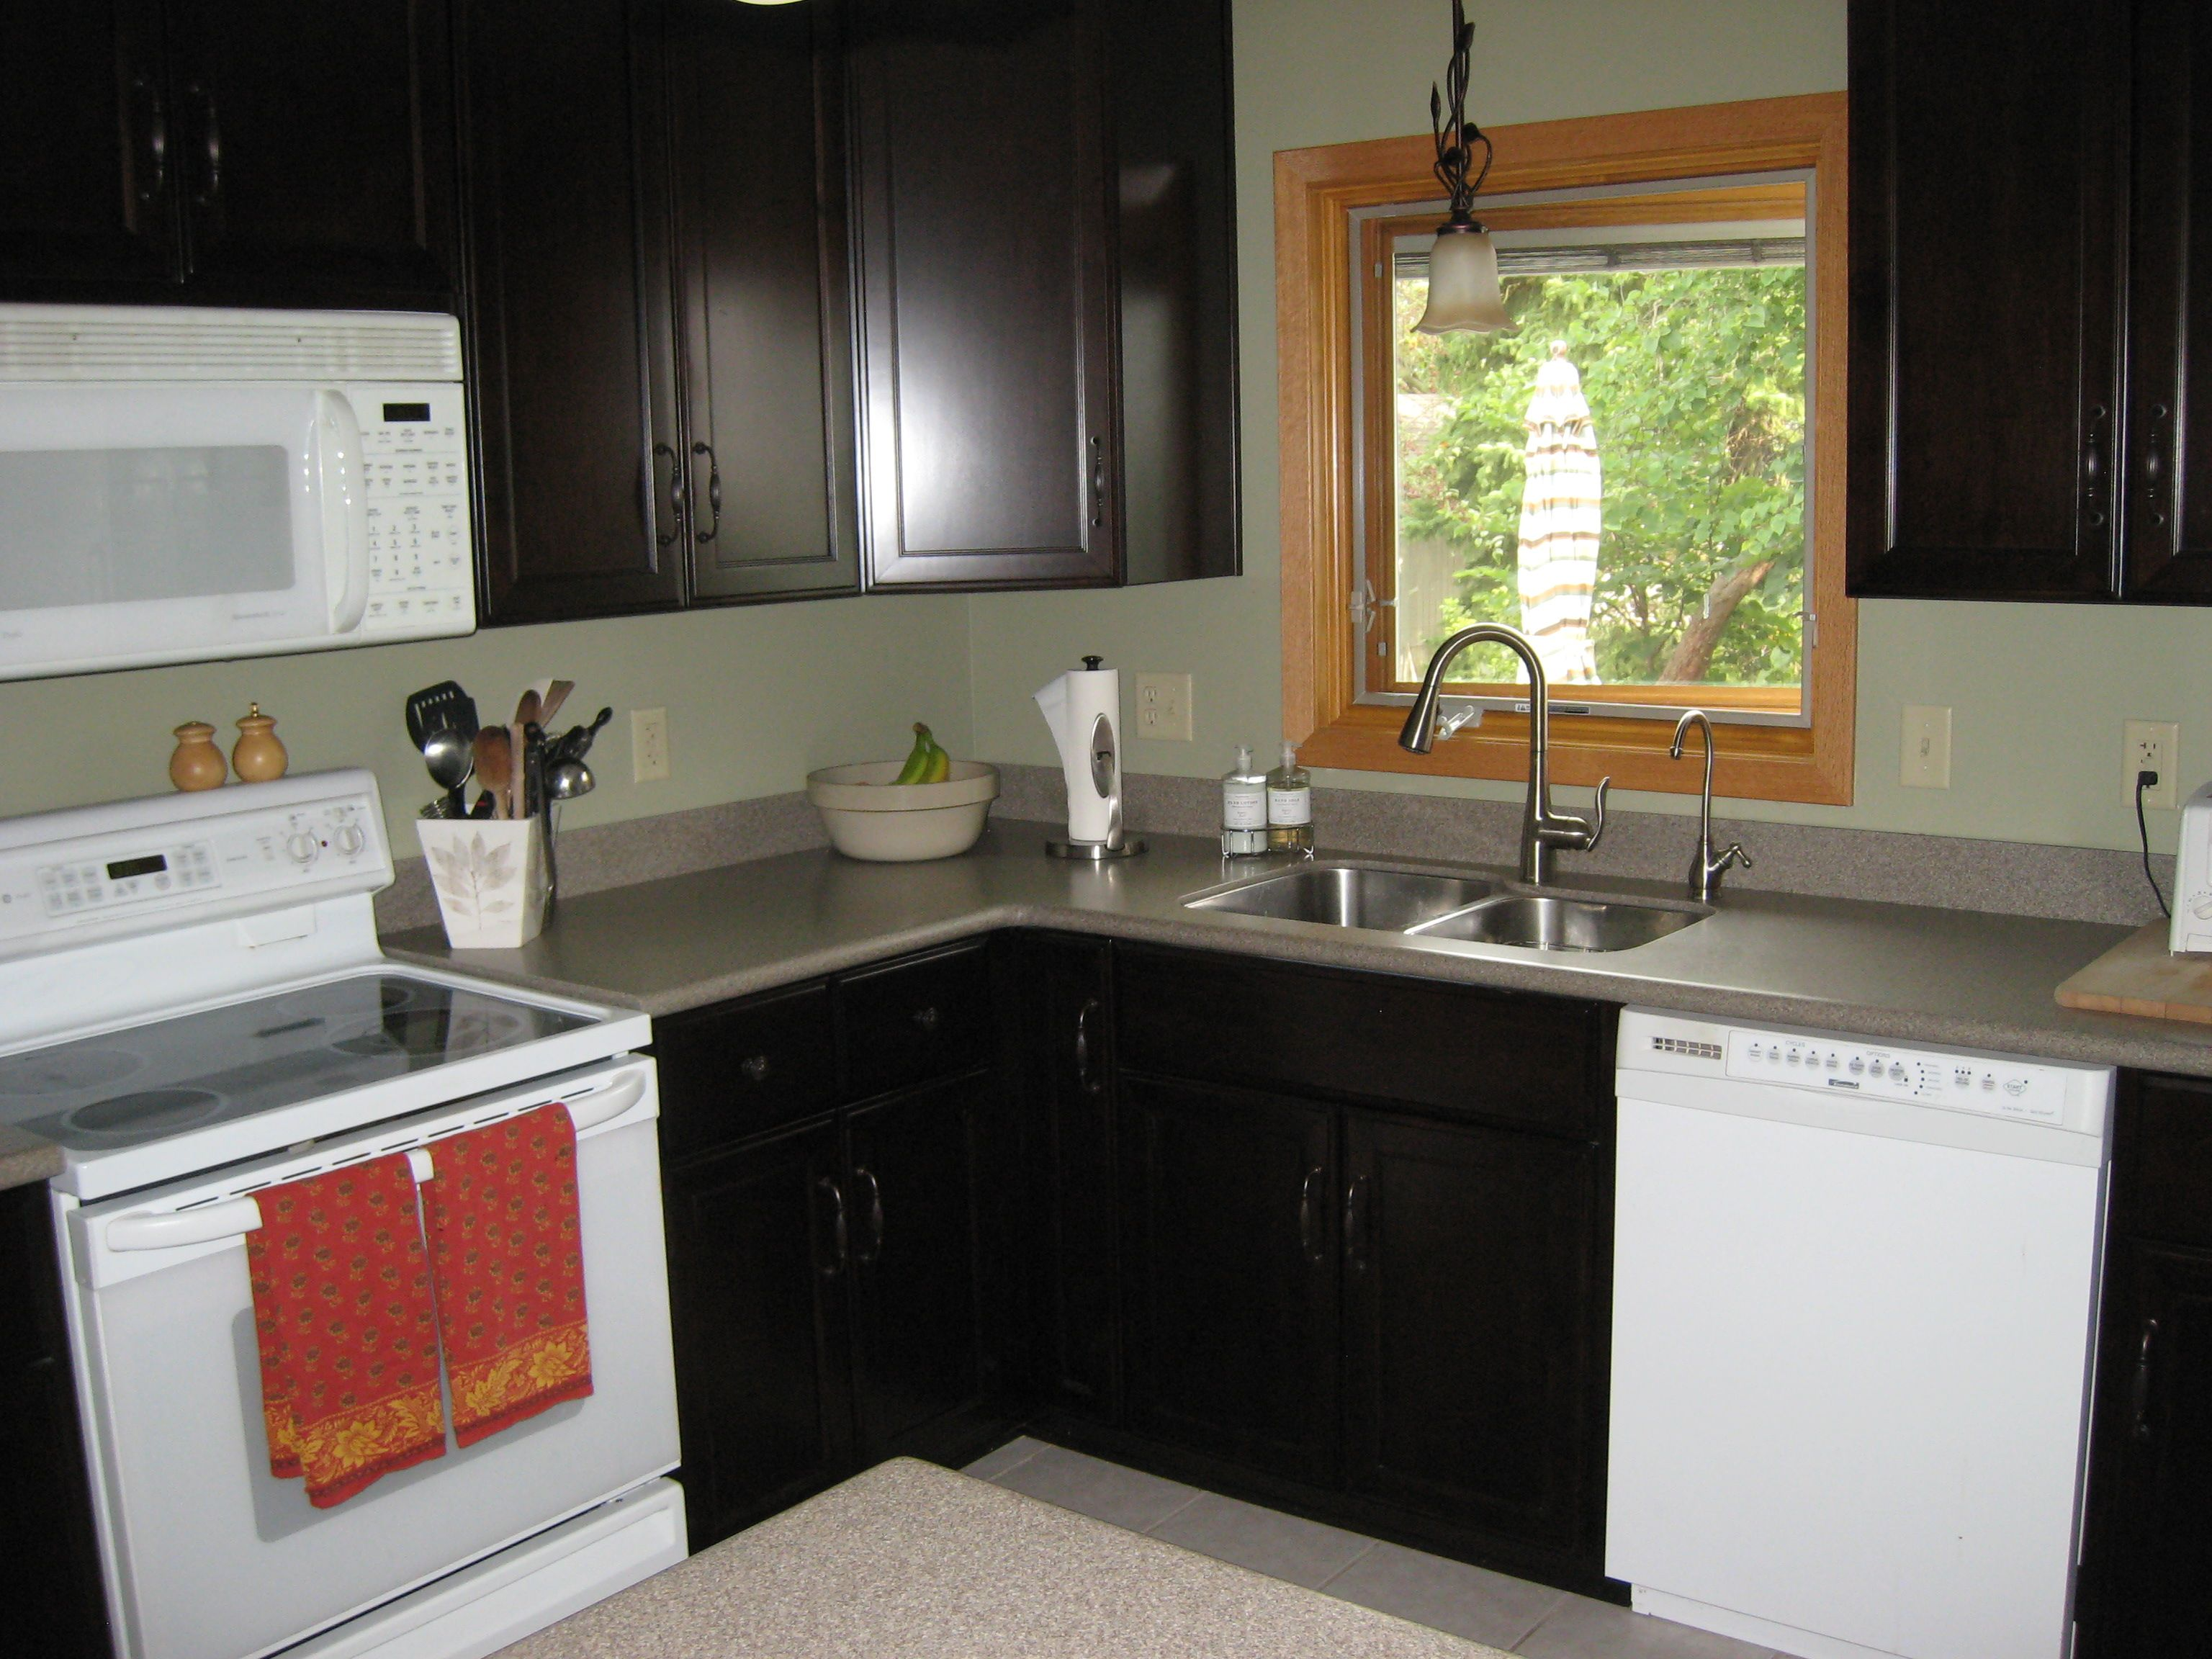 Small L Shaped Kitchen Like Yours With Dark Cabinets And White Appliances Kitchen Decor